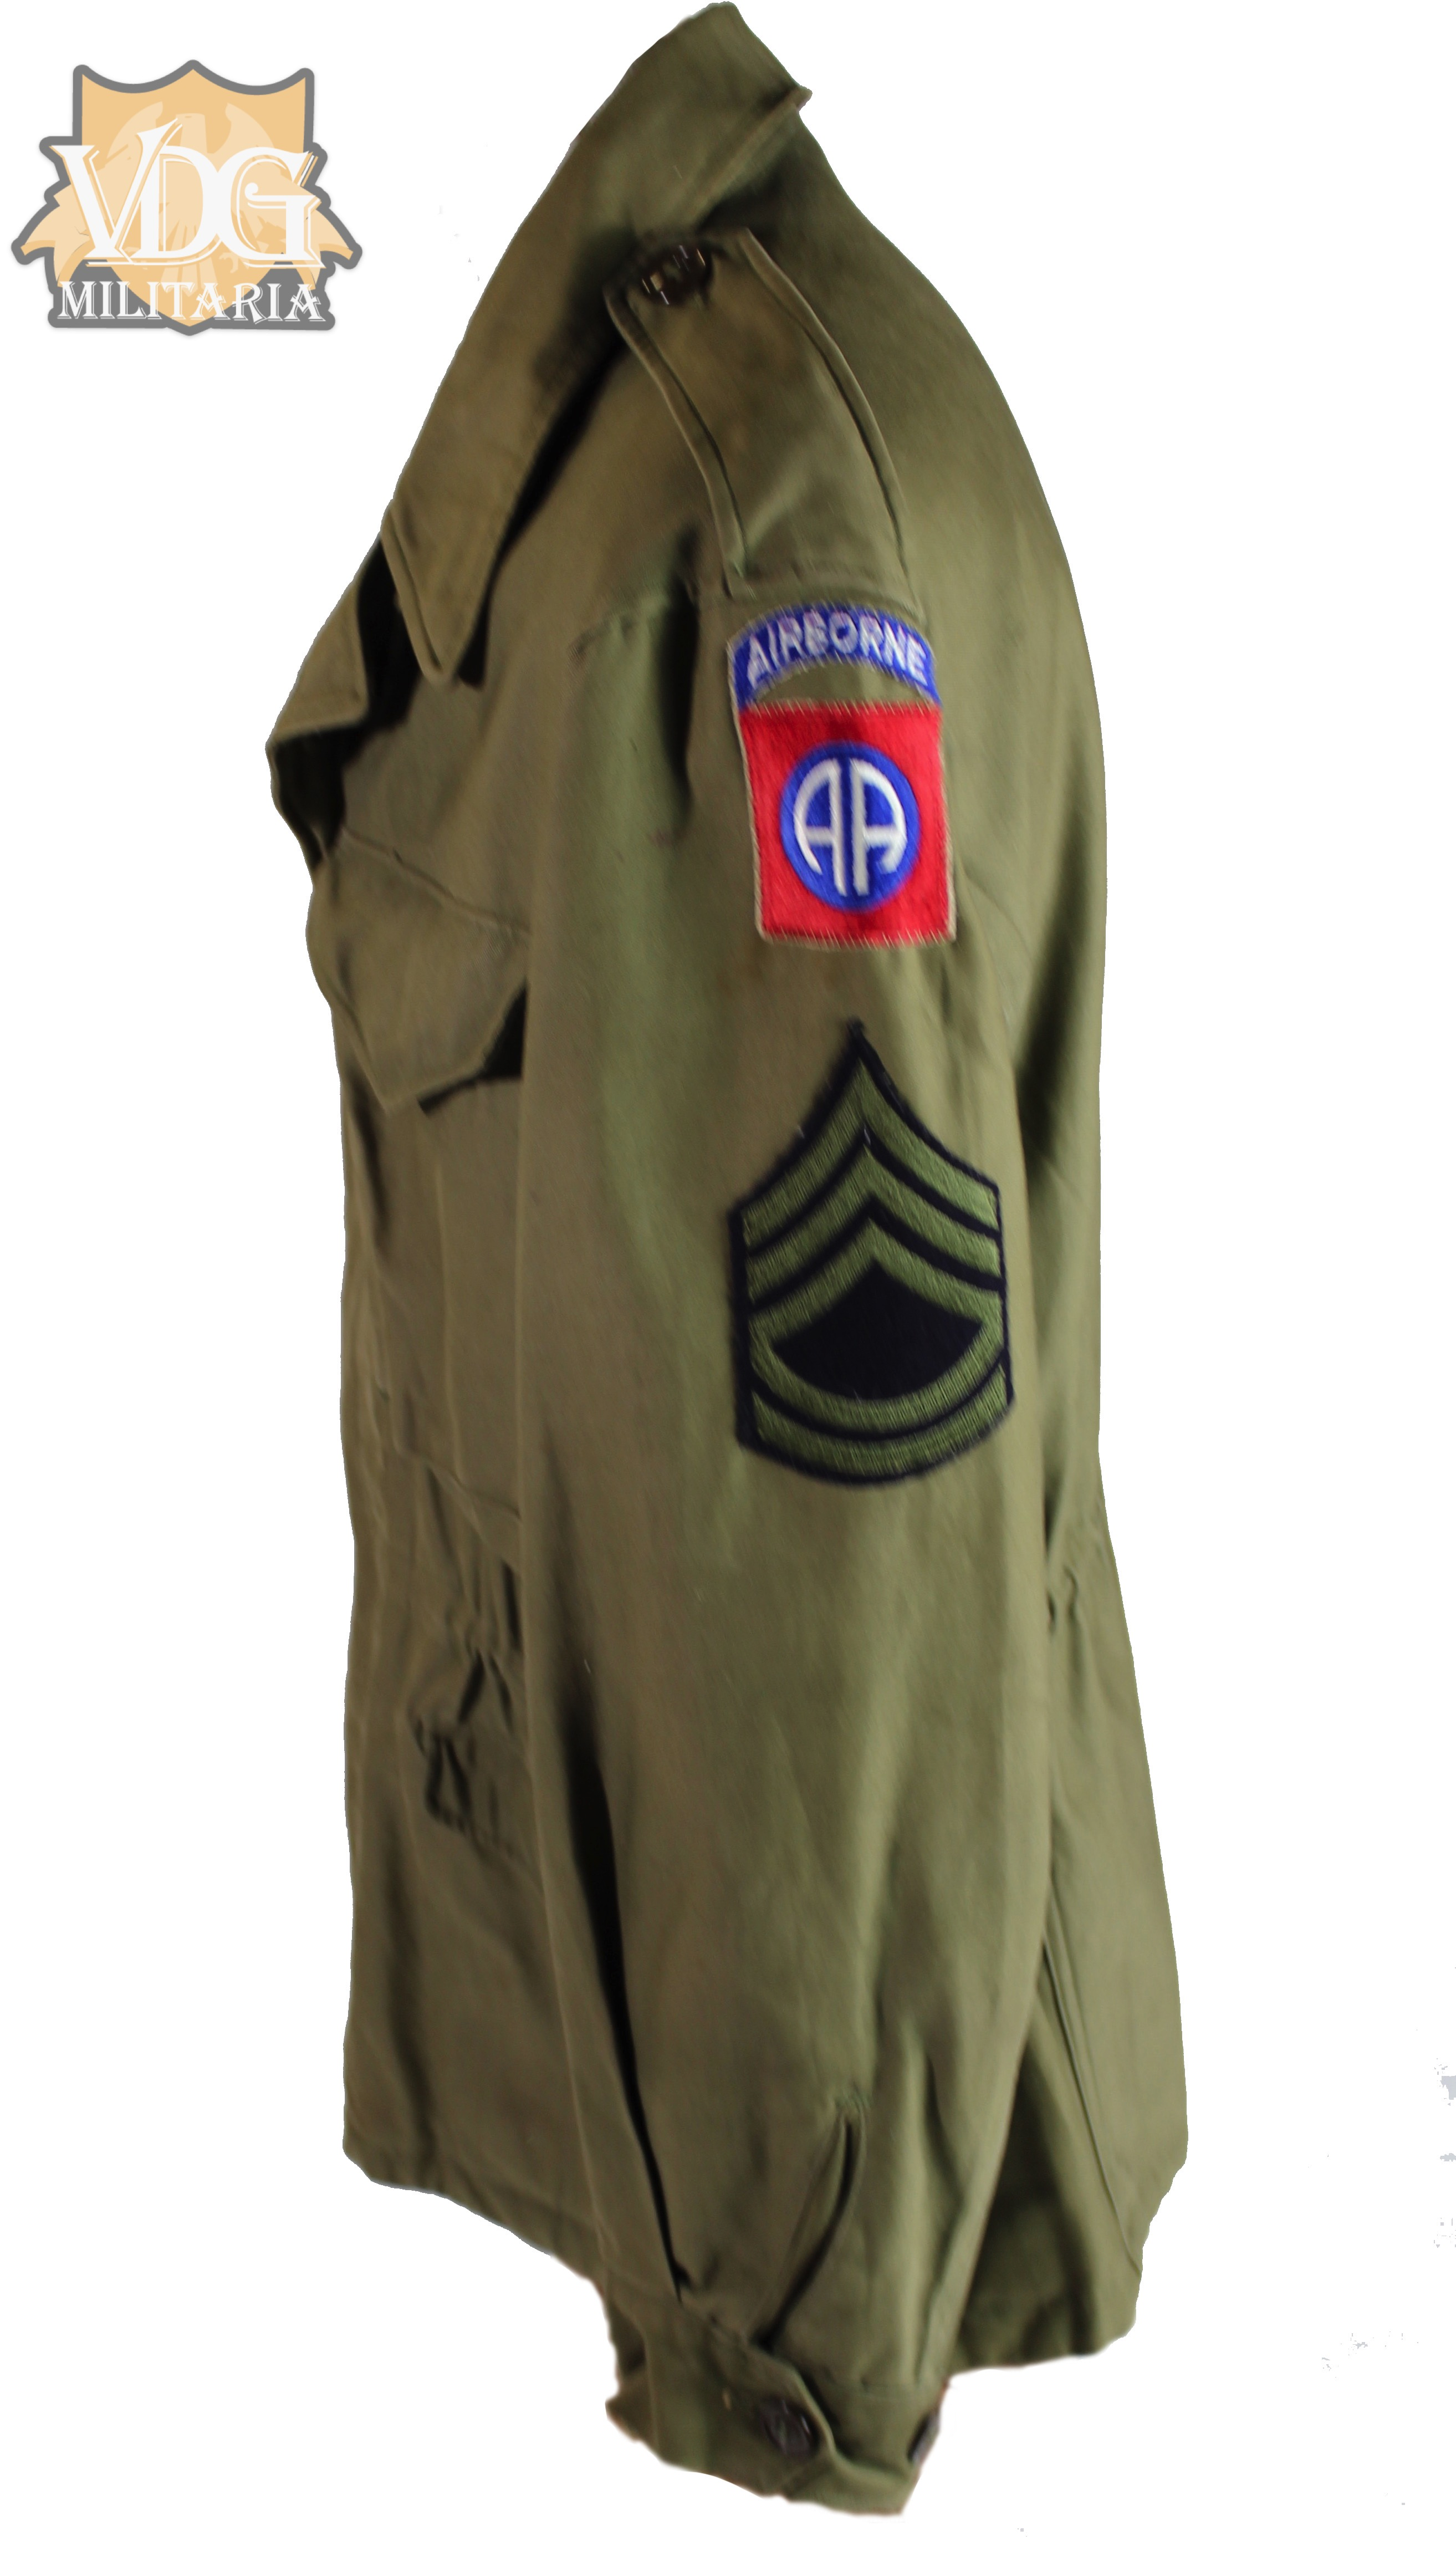 Ww2 Us Army 82nd Airborne M43 Field Jacket Named Vdg